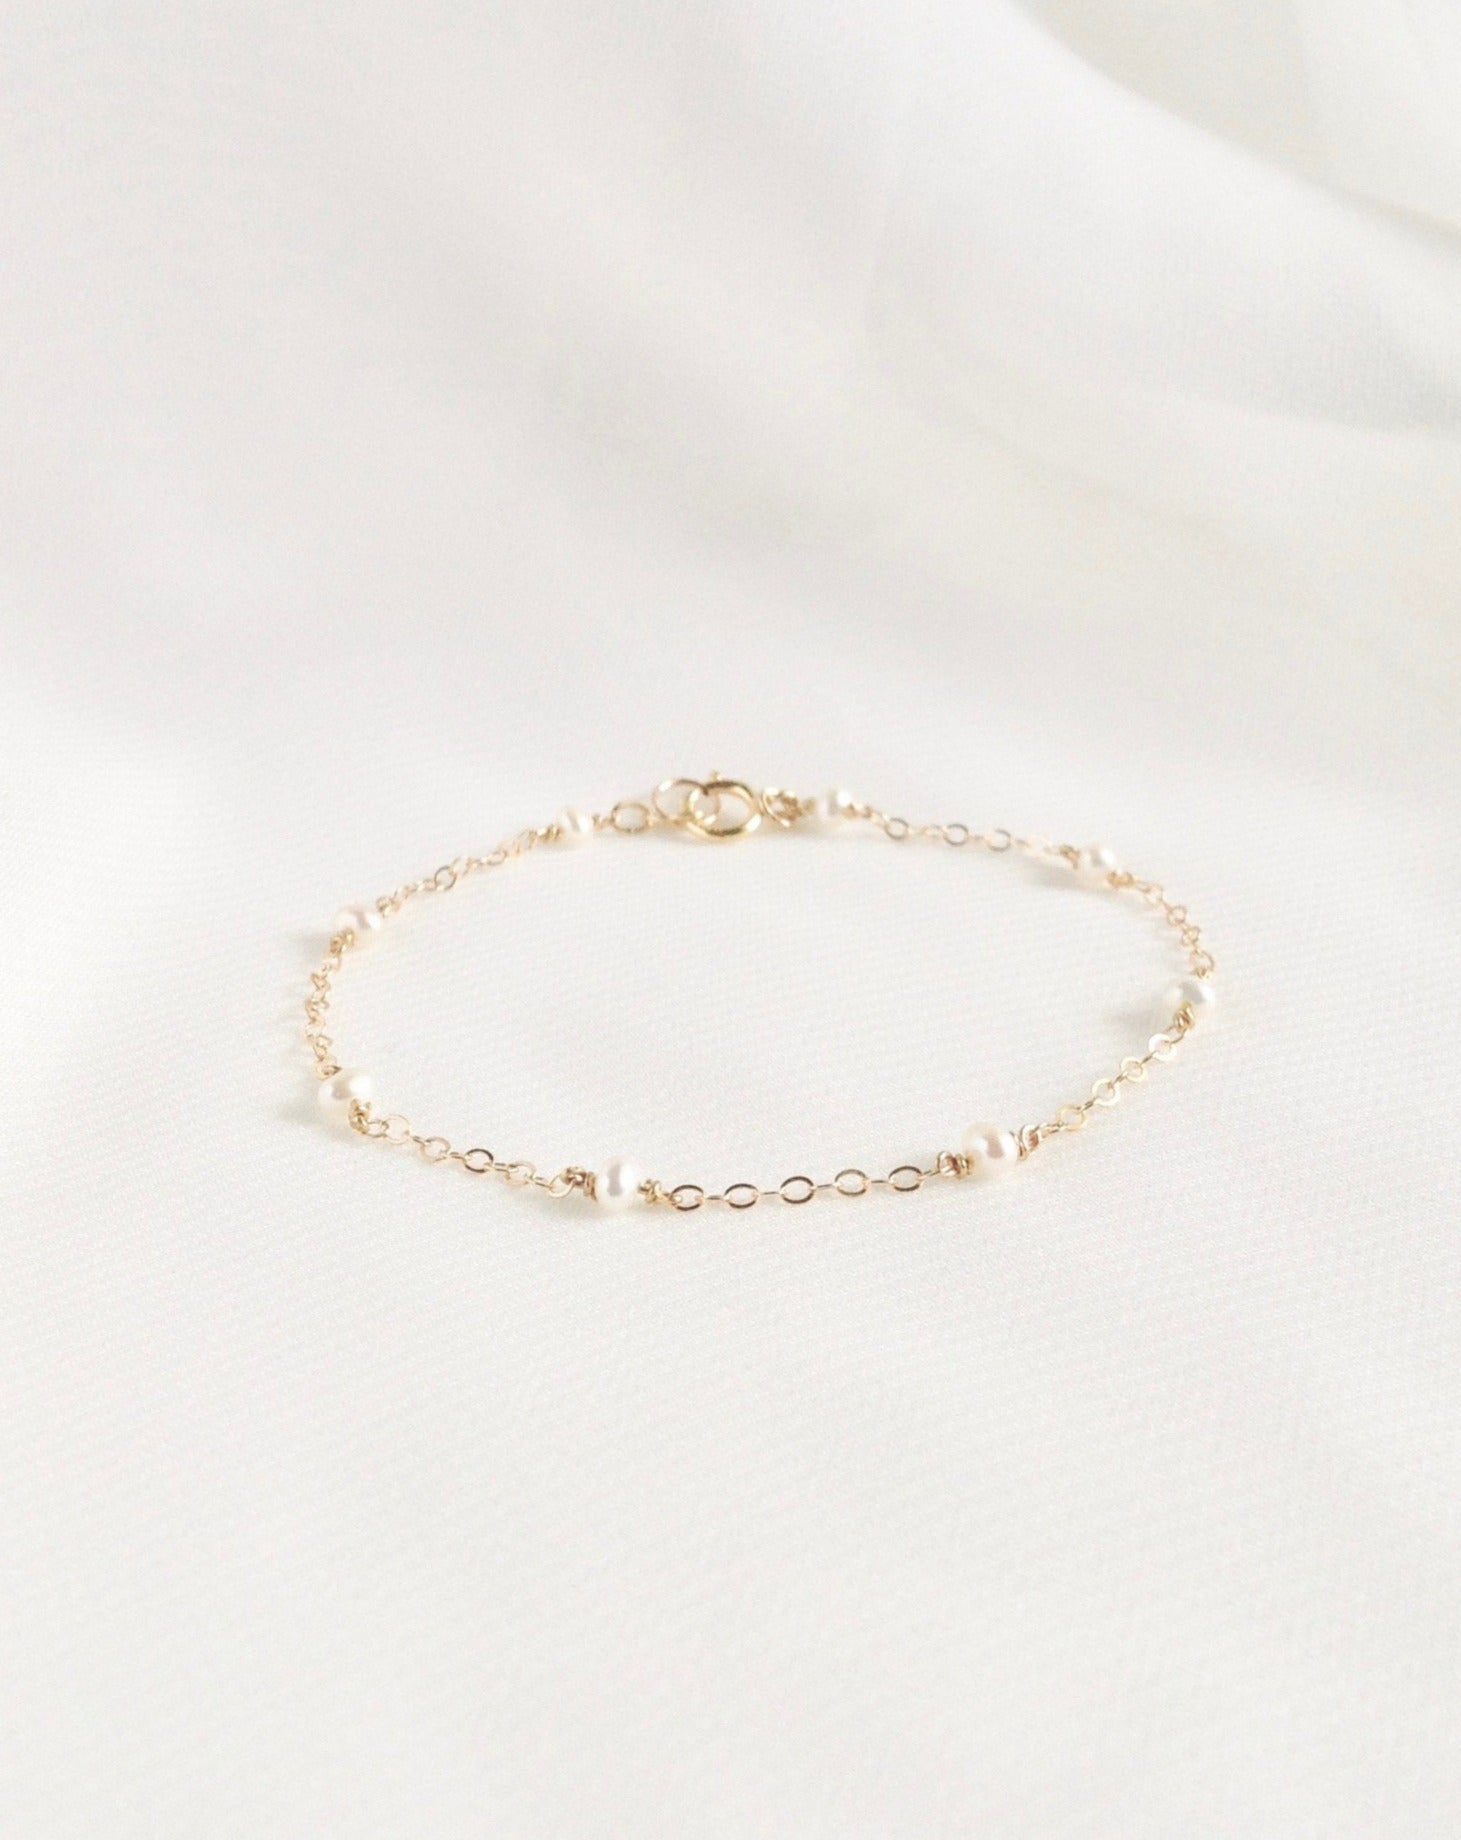 Pearl Thin Chain  Bracelet | Simple Dainty Freshwater Pearl Chain Bracelet In Gold Filled or Sterling Silver | IB Jewelry